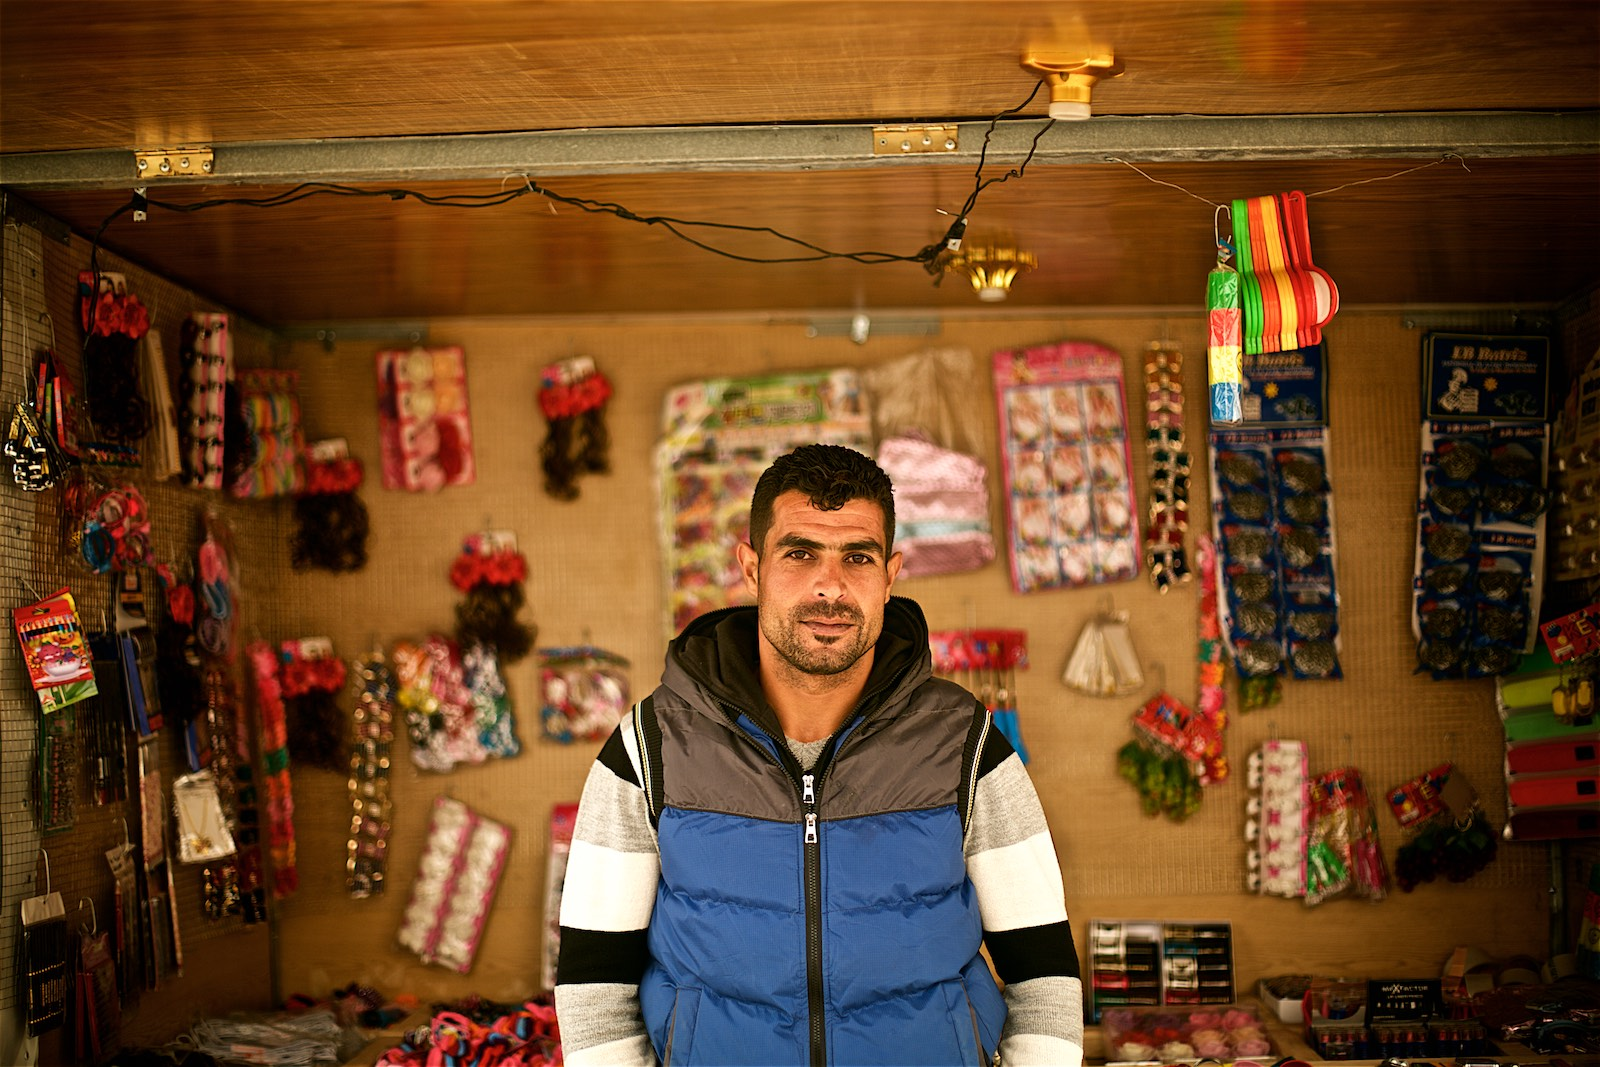 Rahman (name changed) in front of a shop where he works. He says it helps him sustain his family, however, he sees no future for himself in the camp and has decided to go back the first opportunity he has.(photo: Denis Bosnic)